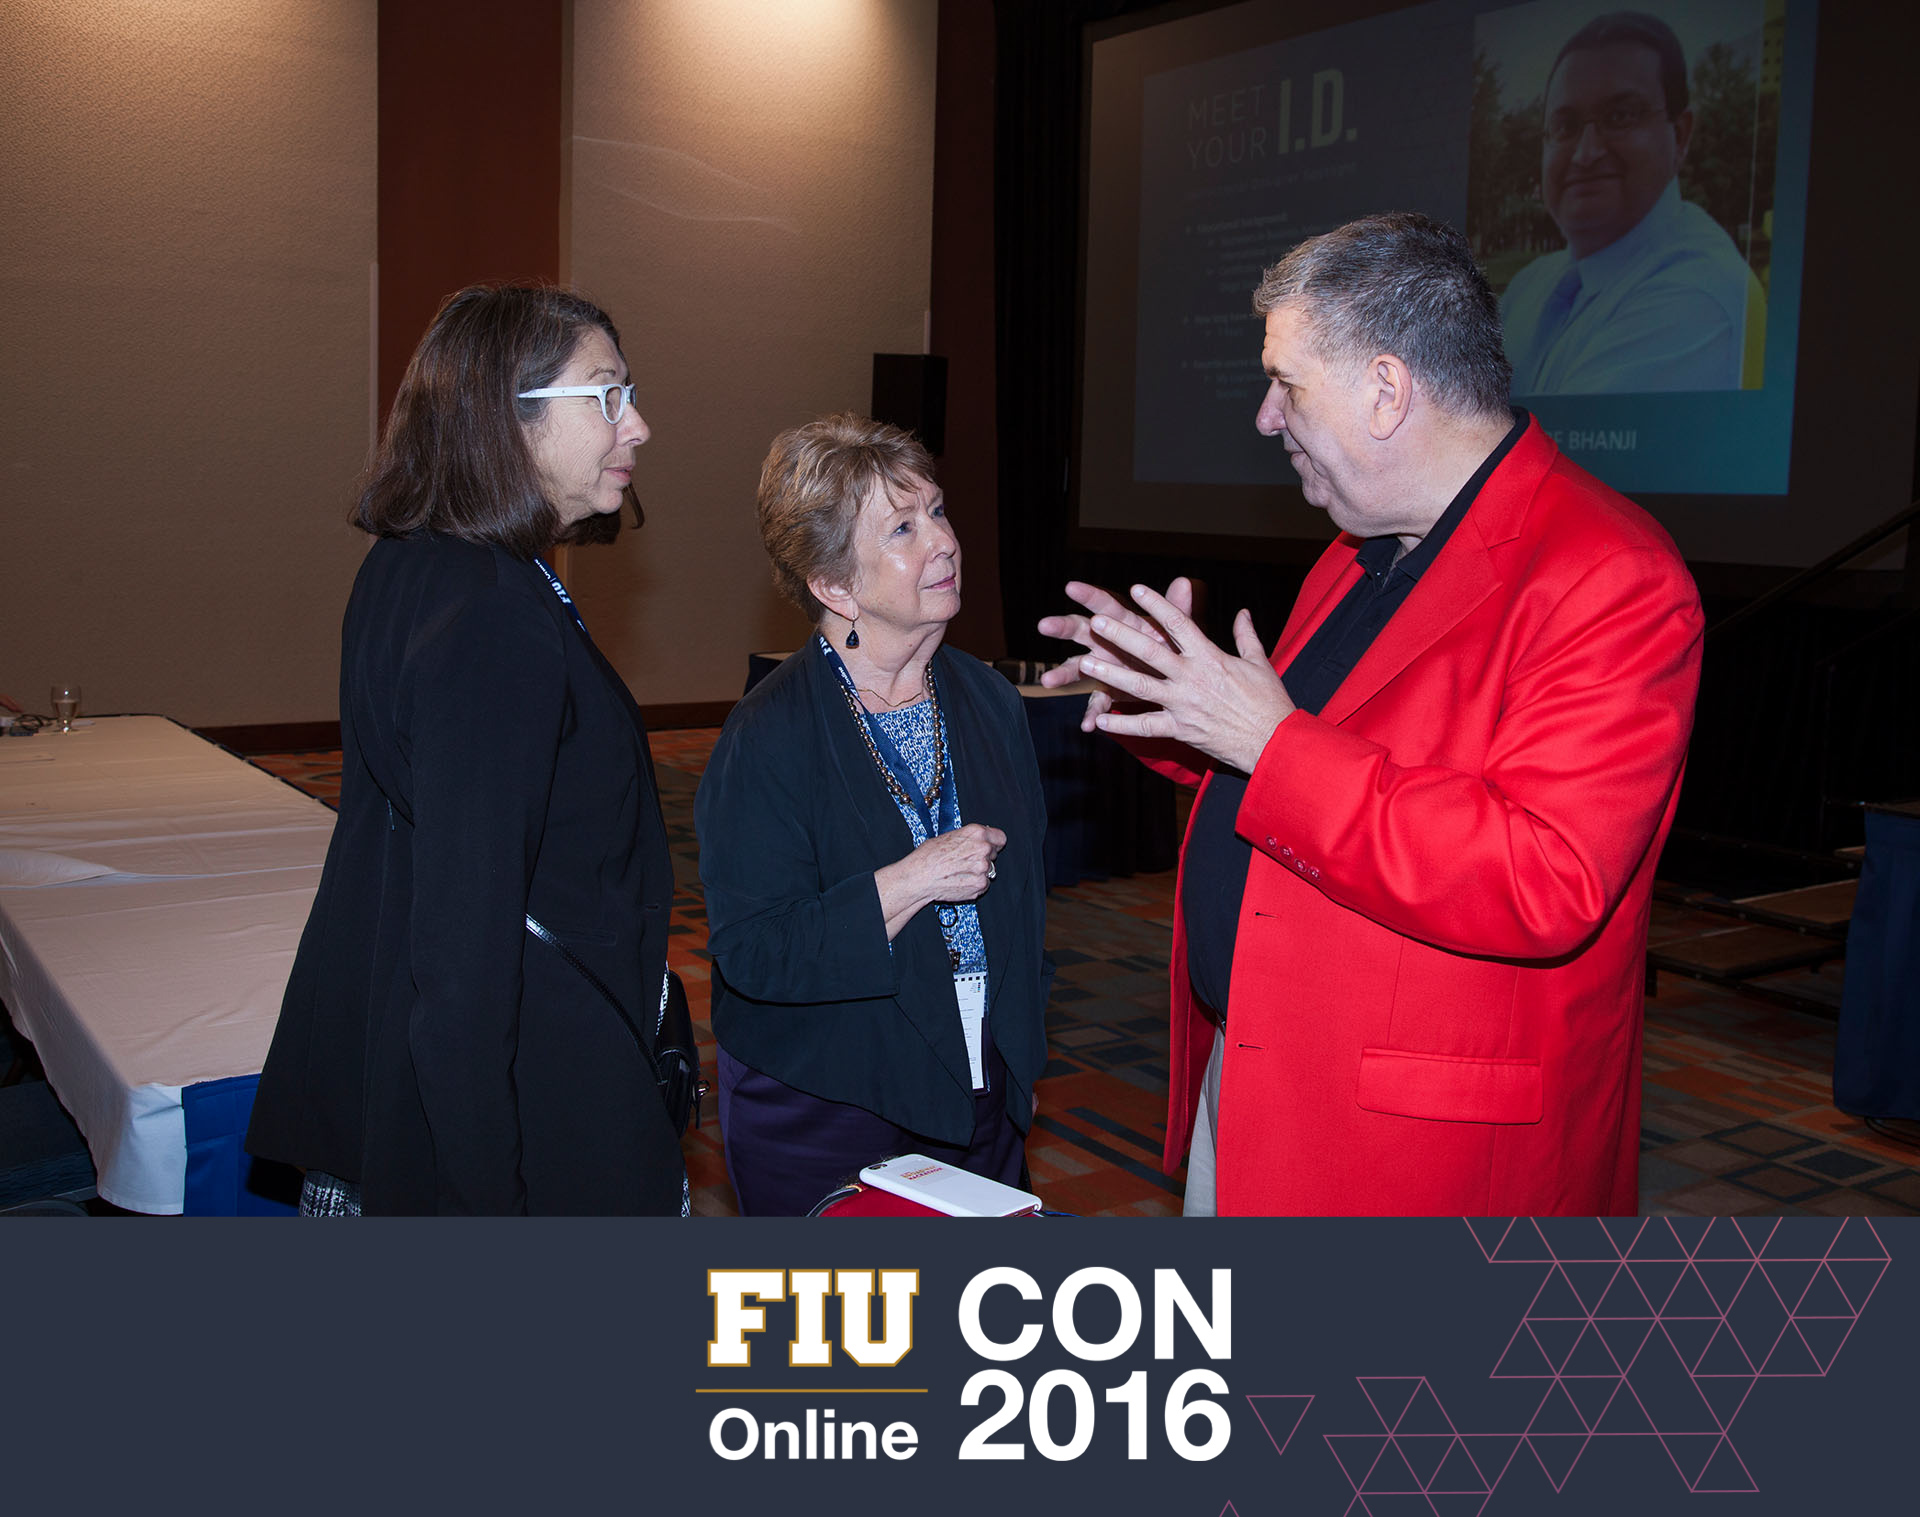 181.jpg FIU Online conference photos